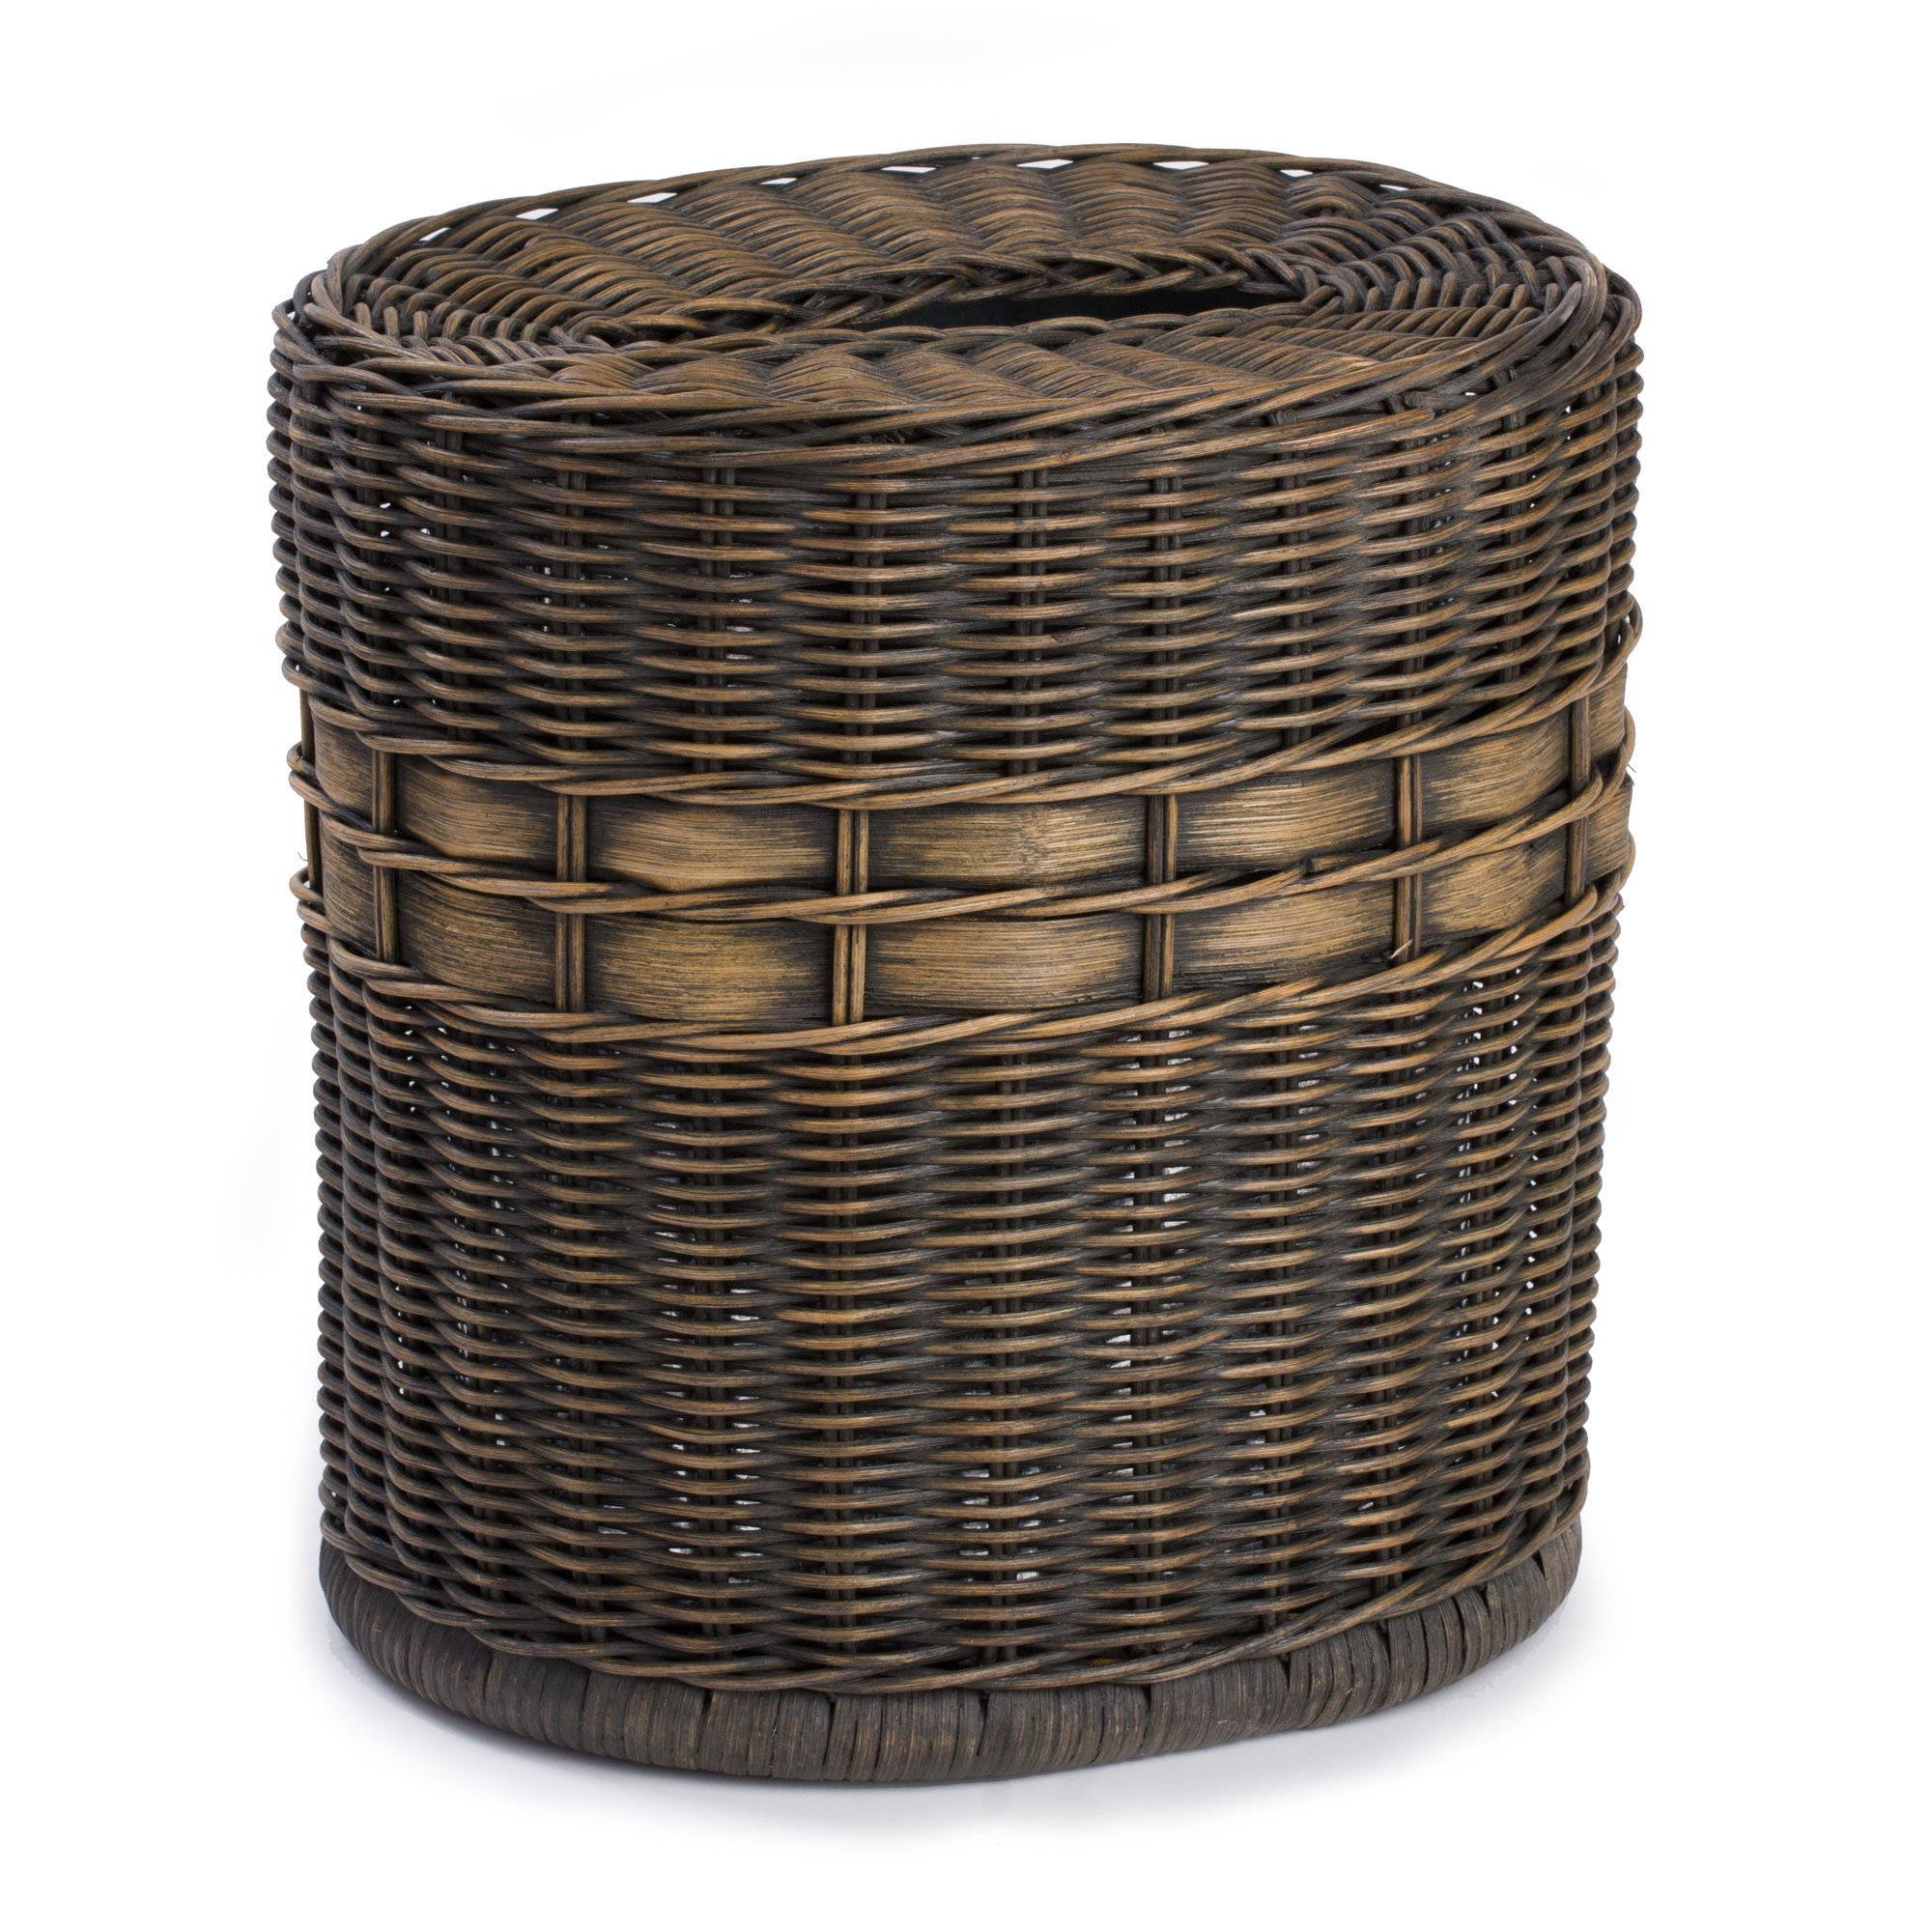 The Basket Lady Drop-in Oval Wicker Waste Basket with Removable Metal Liner, 12 in L x 9.5 in W x 12 in H, Antique Walnut Brown by The Basket Lady